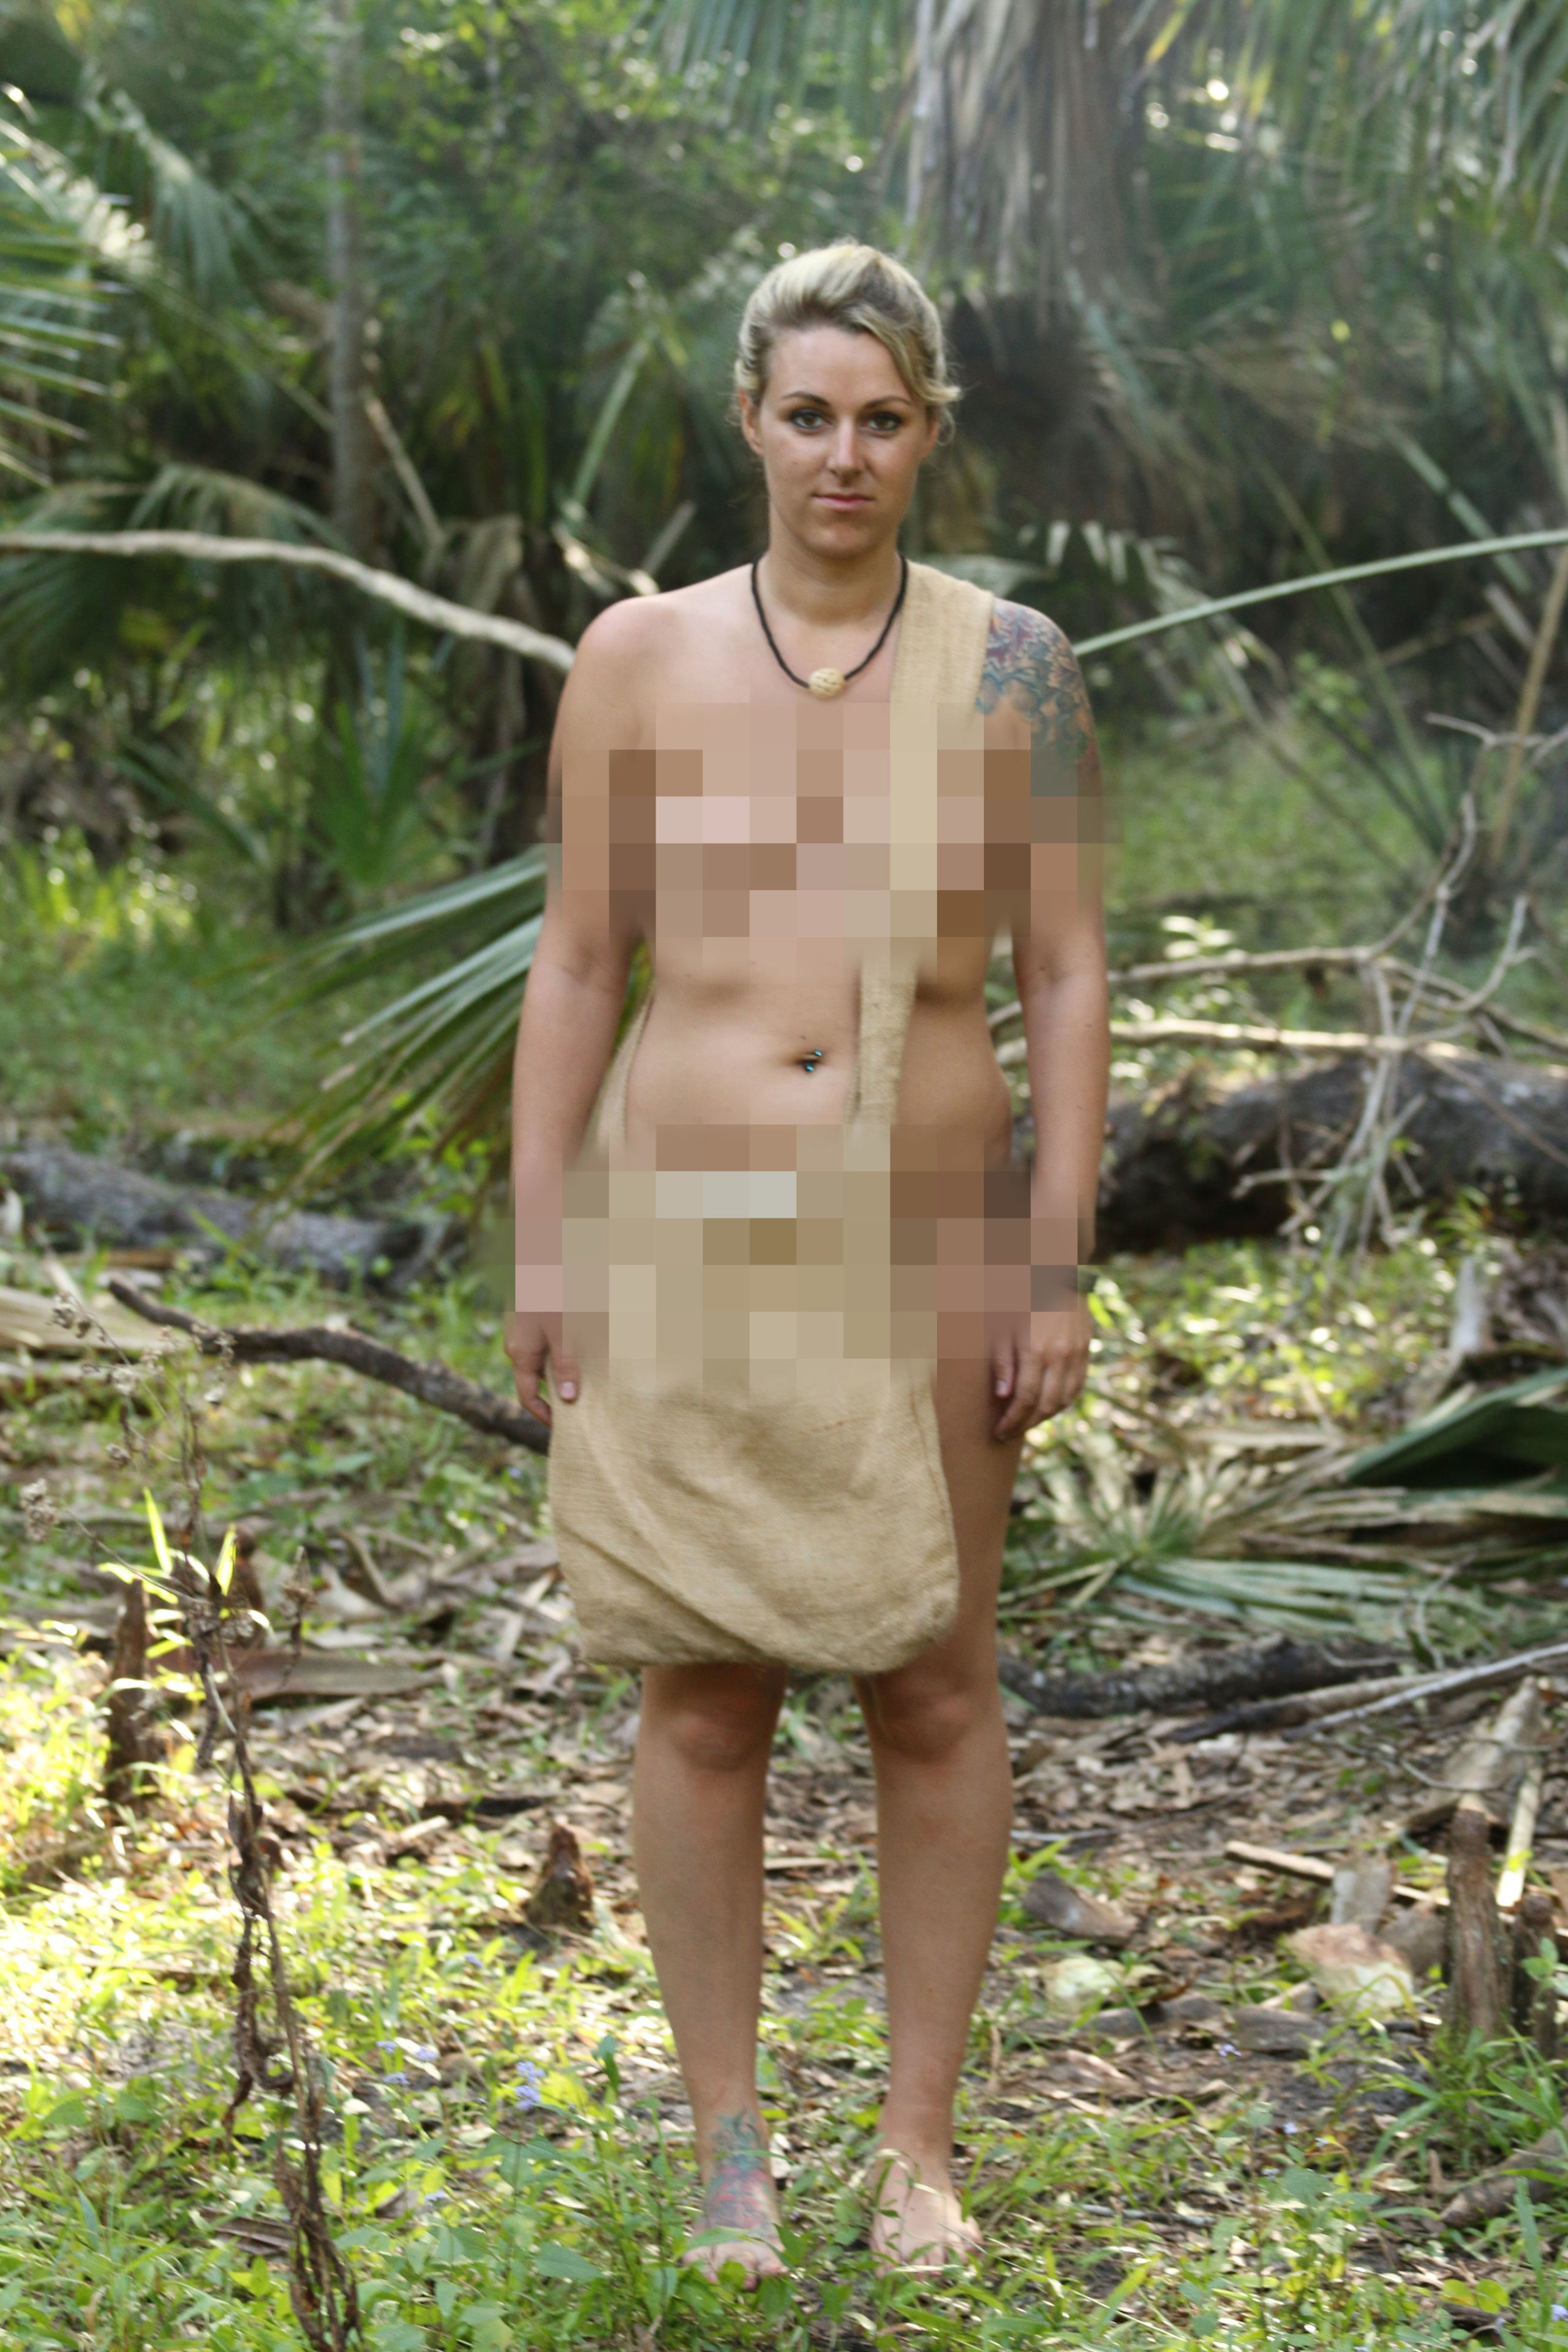 The Women Of Naked And Afraid Pics - Adult Gallery-5649